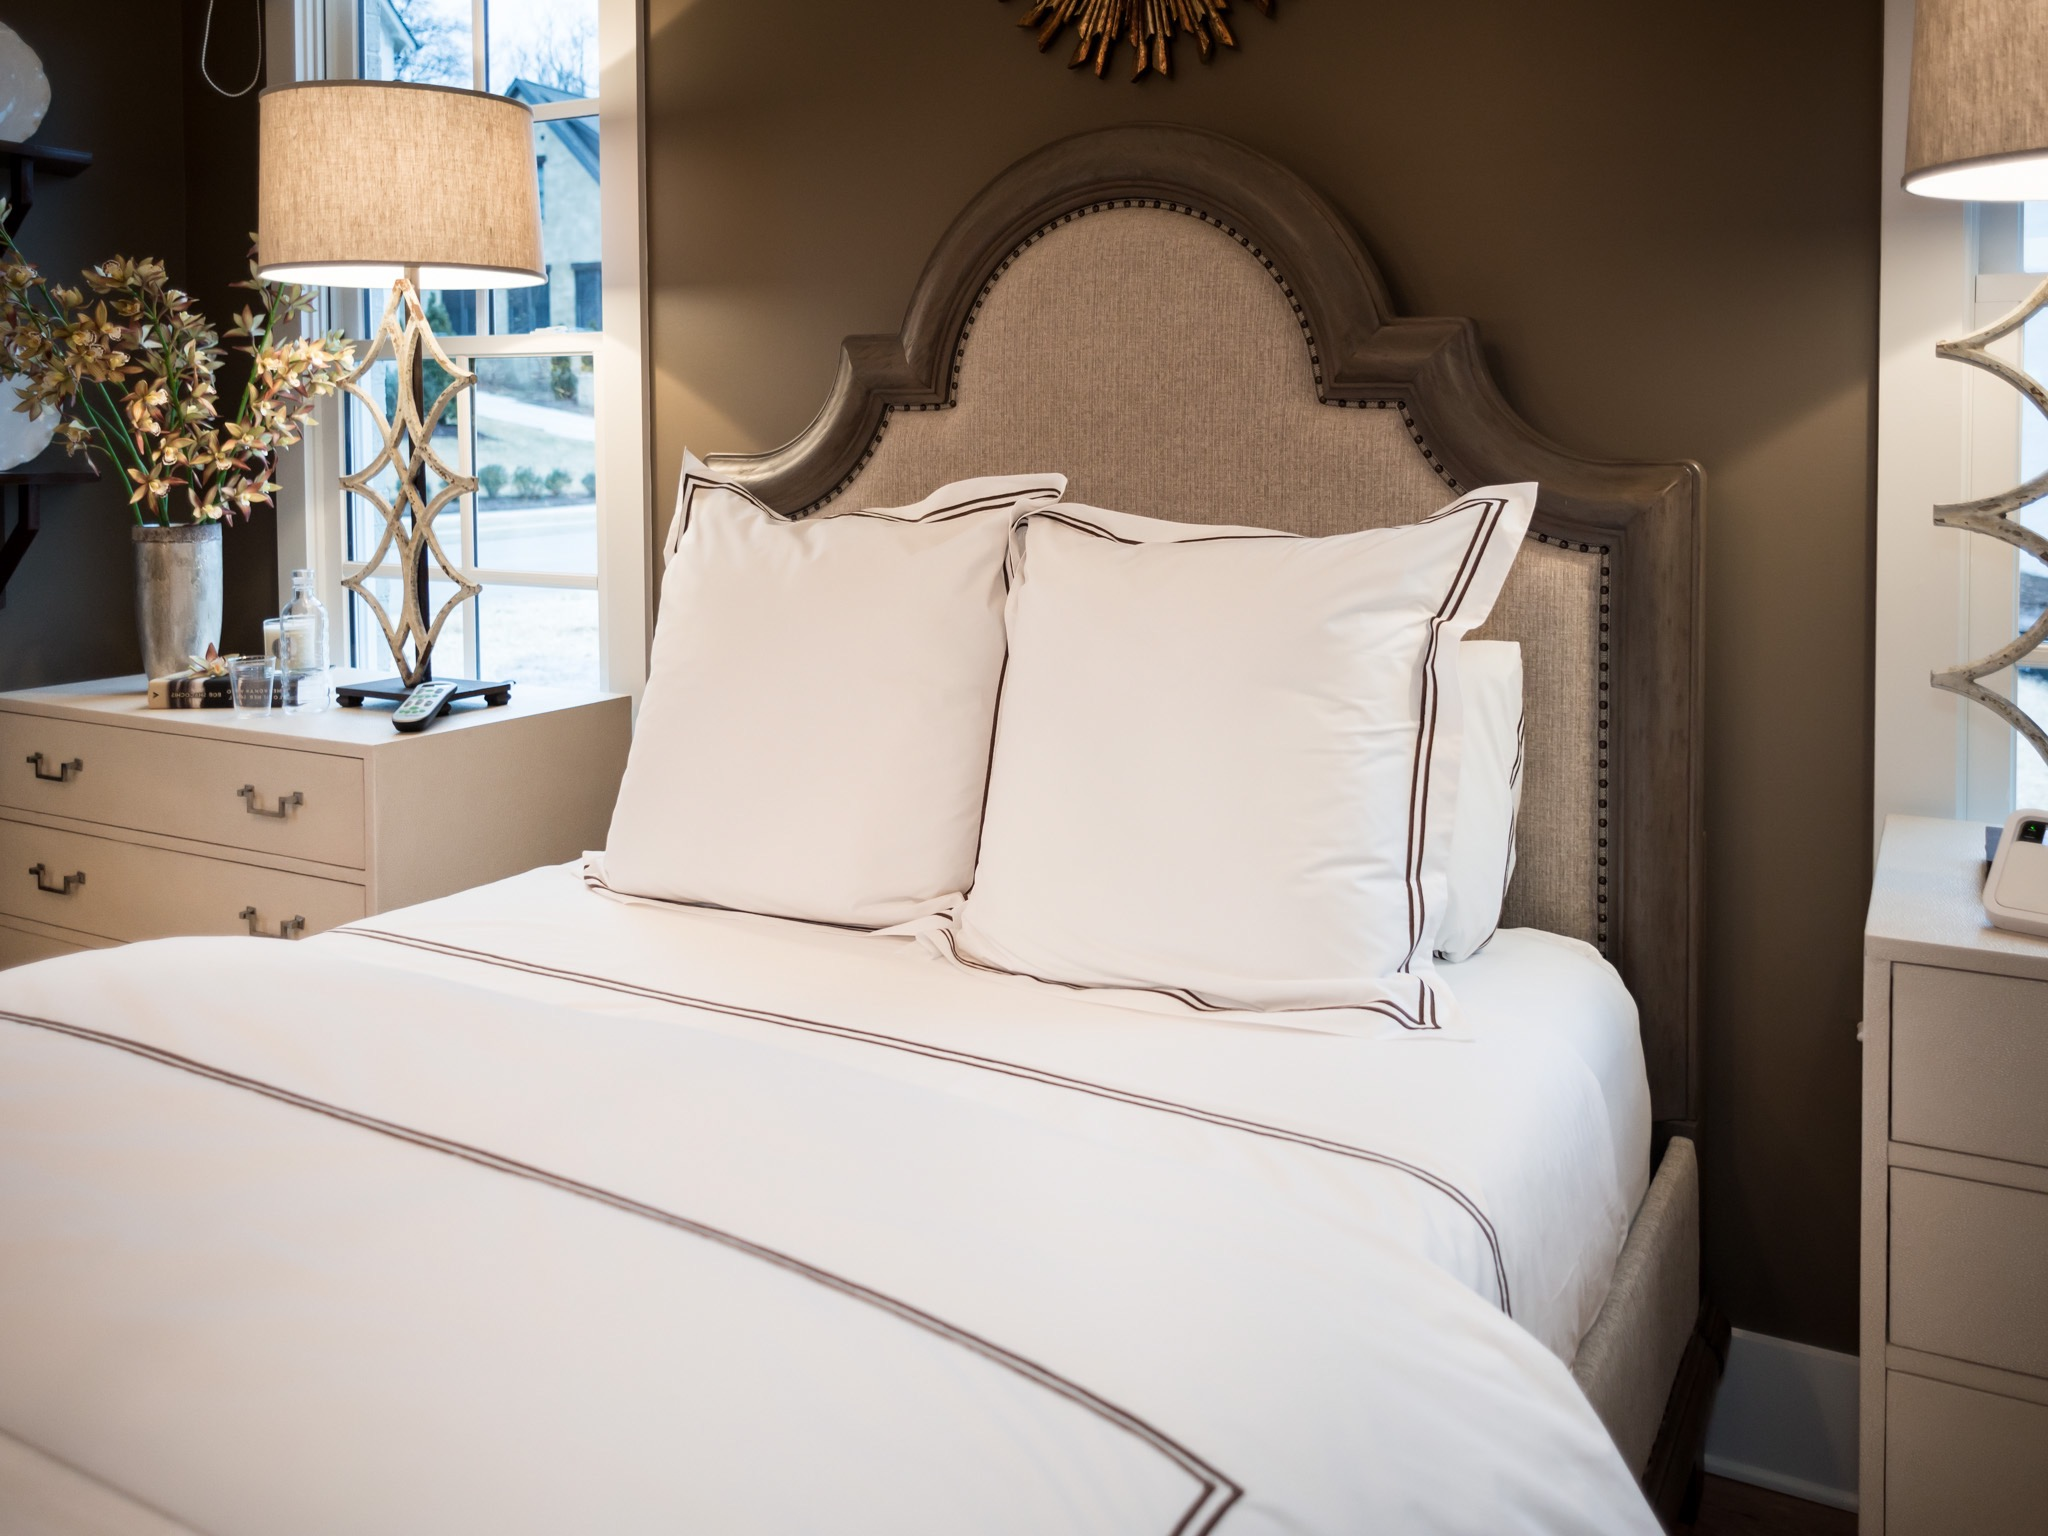 Modern Master Bedroom With Italian Satin Stitch Bedding (Image 9 of 12)